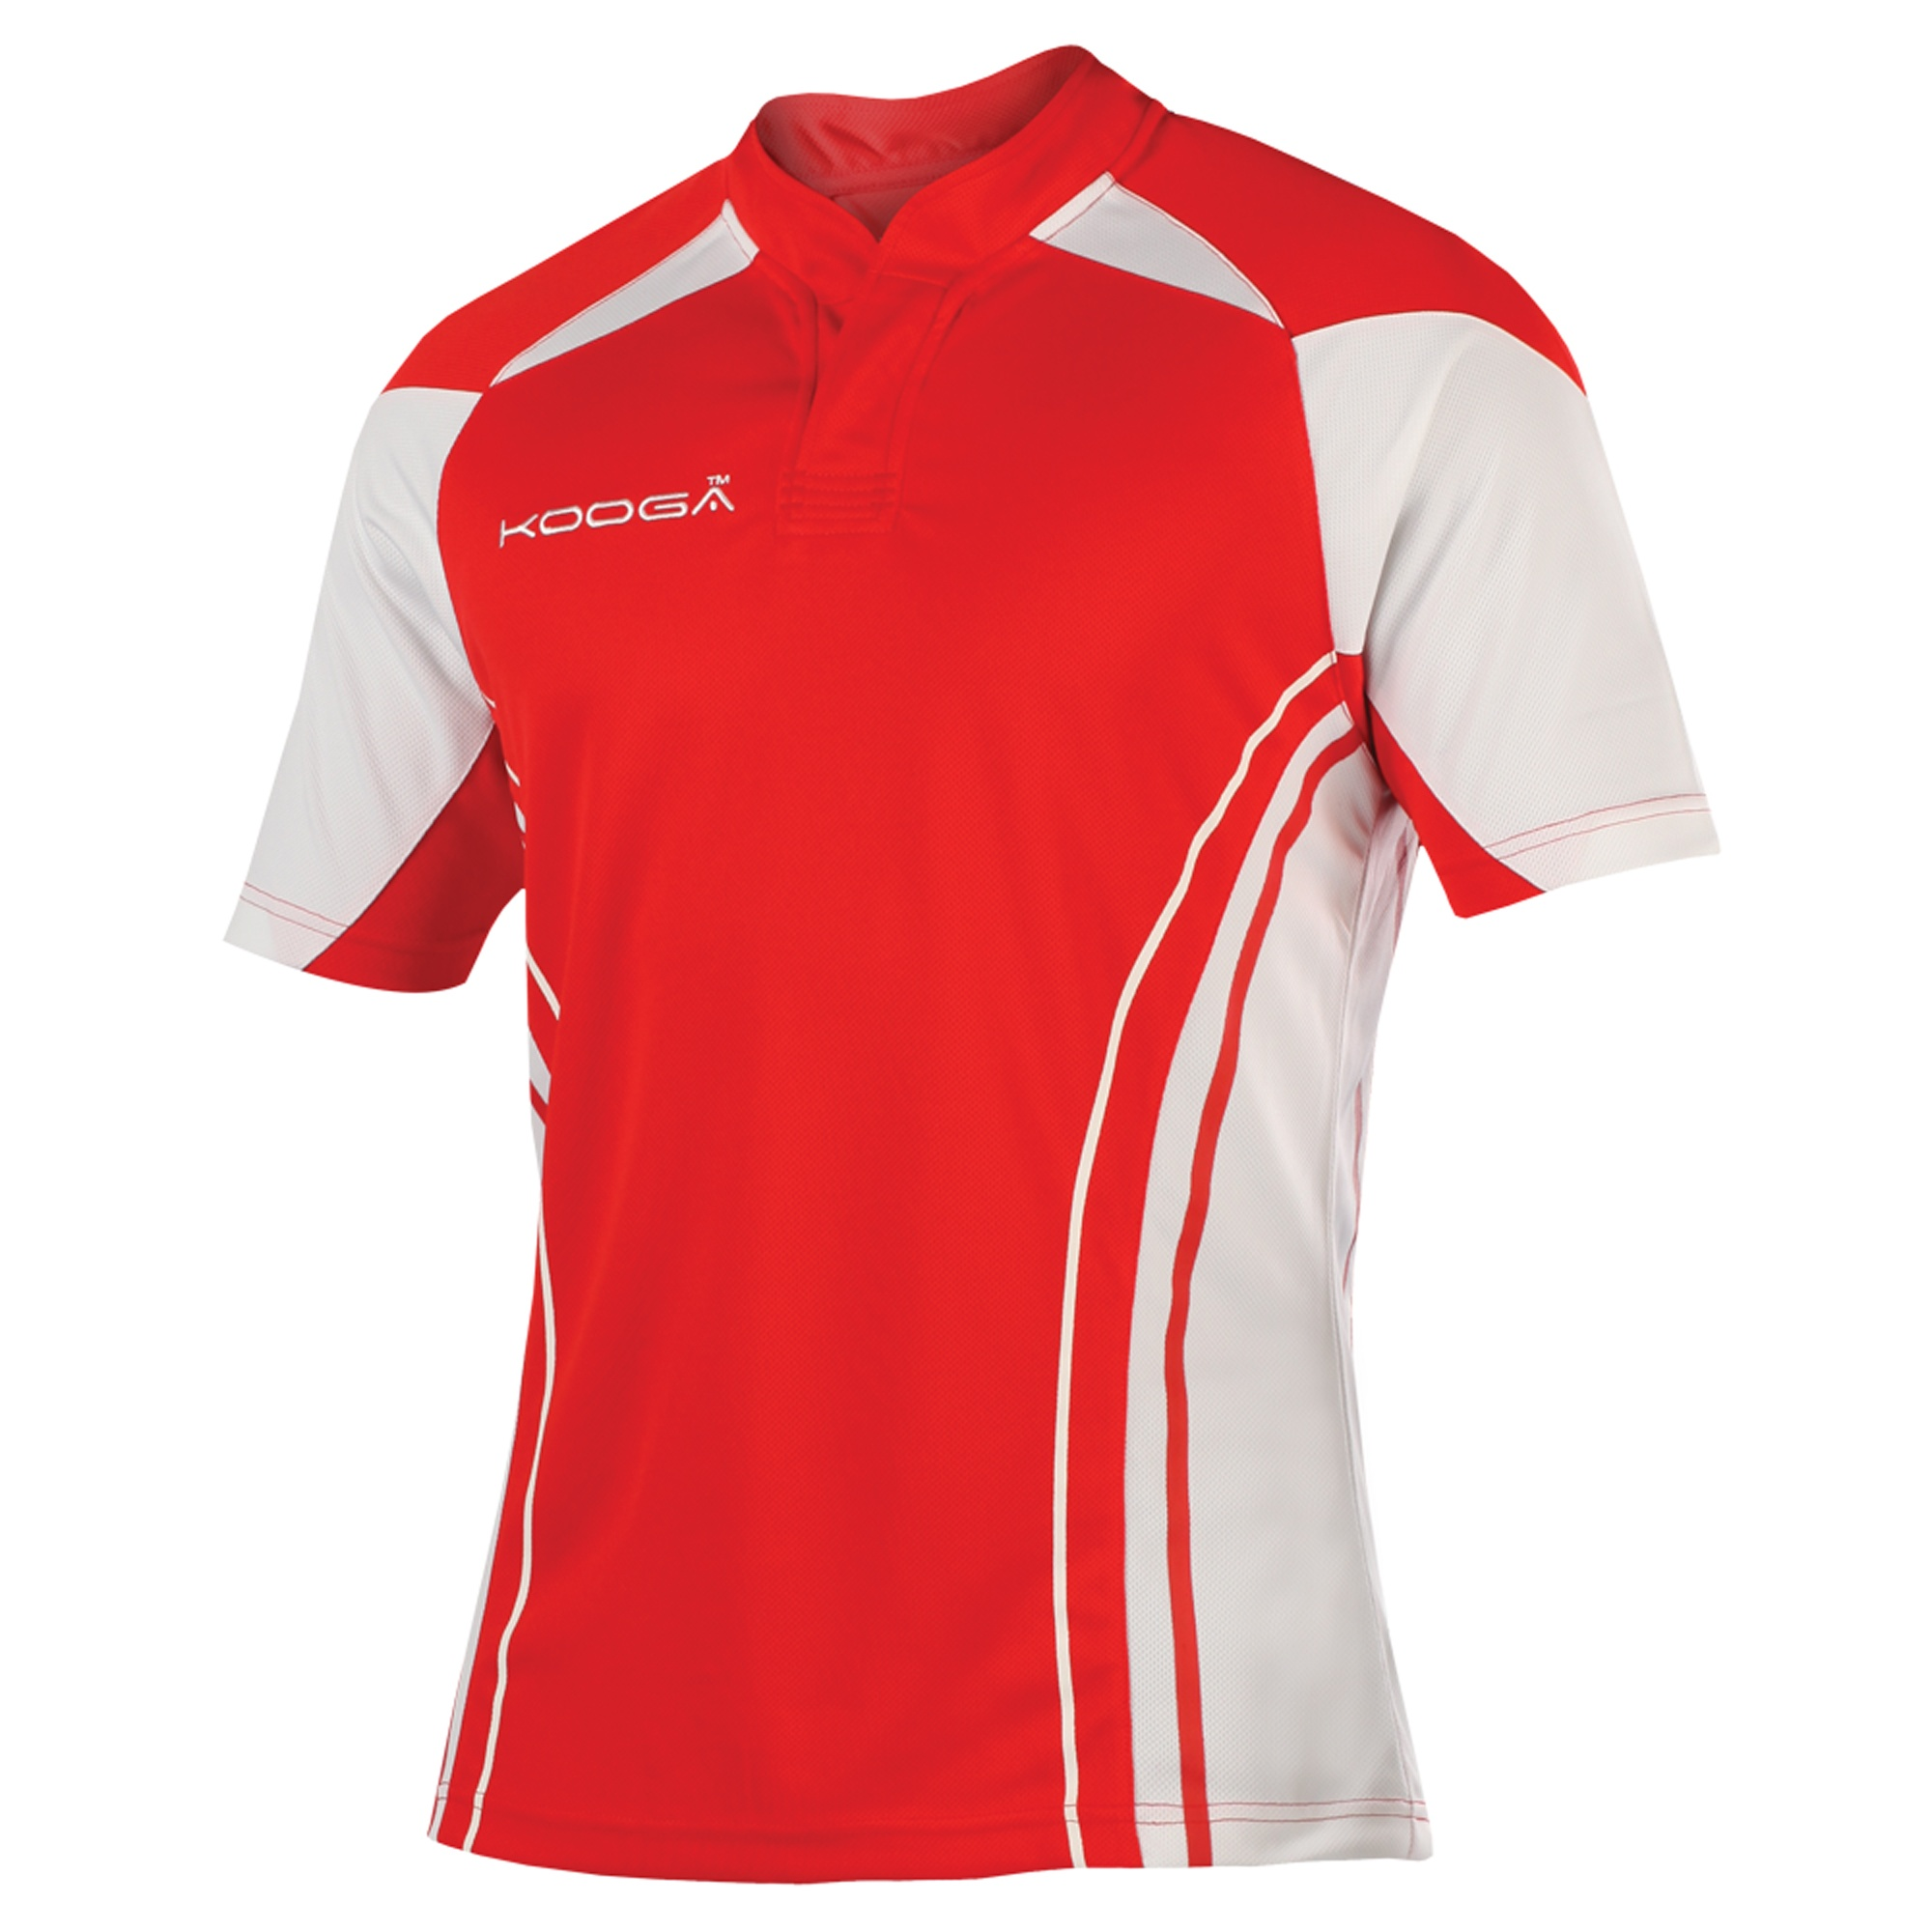 KooGa Boys Junior Stadium Match Rugby Shirt (S) (Red/White)